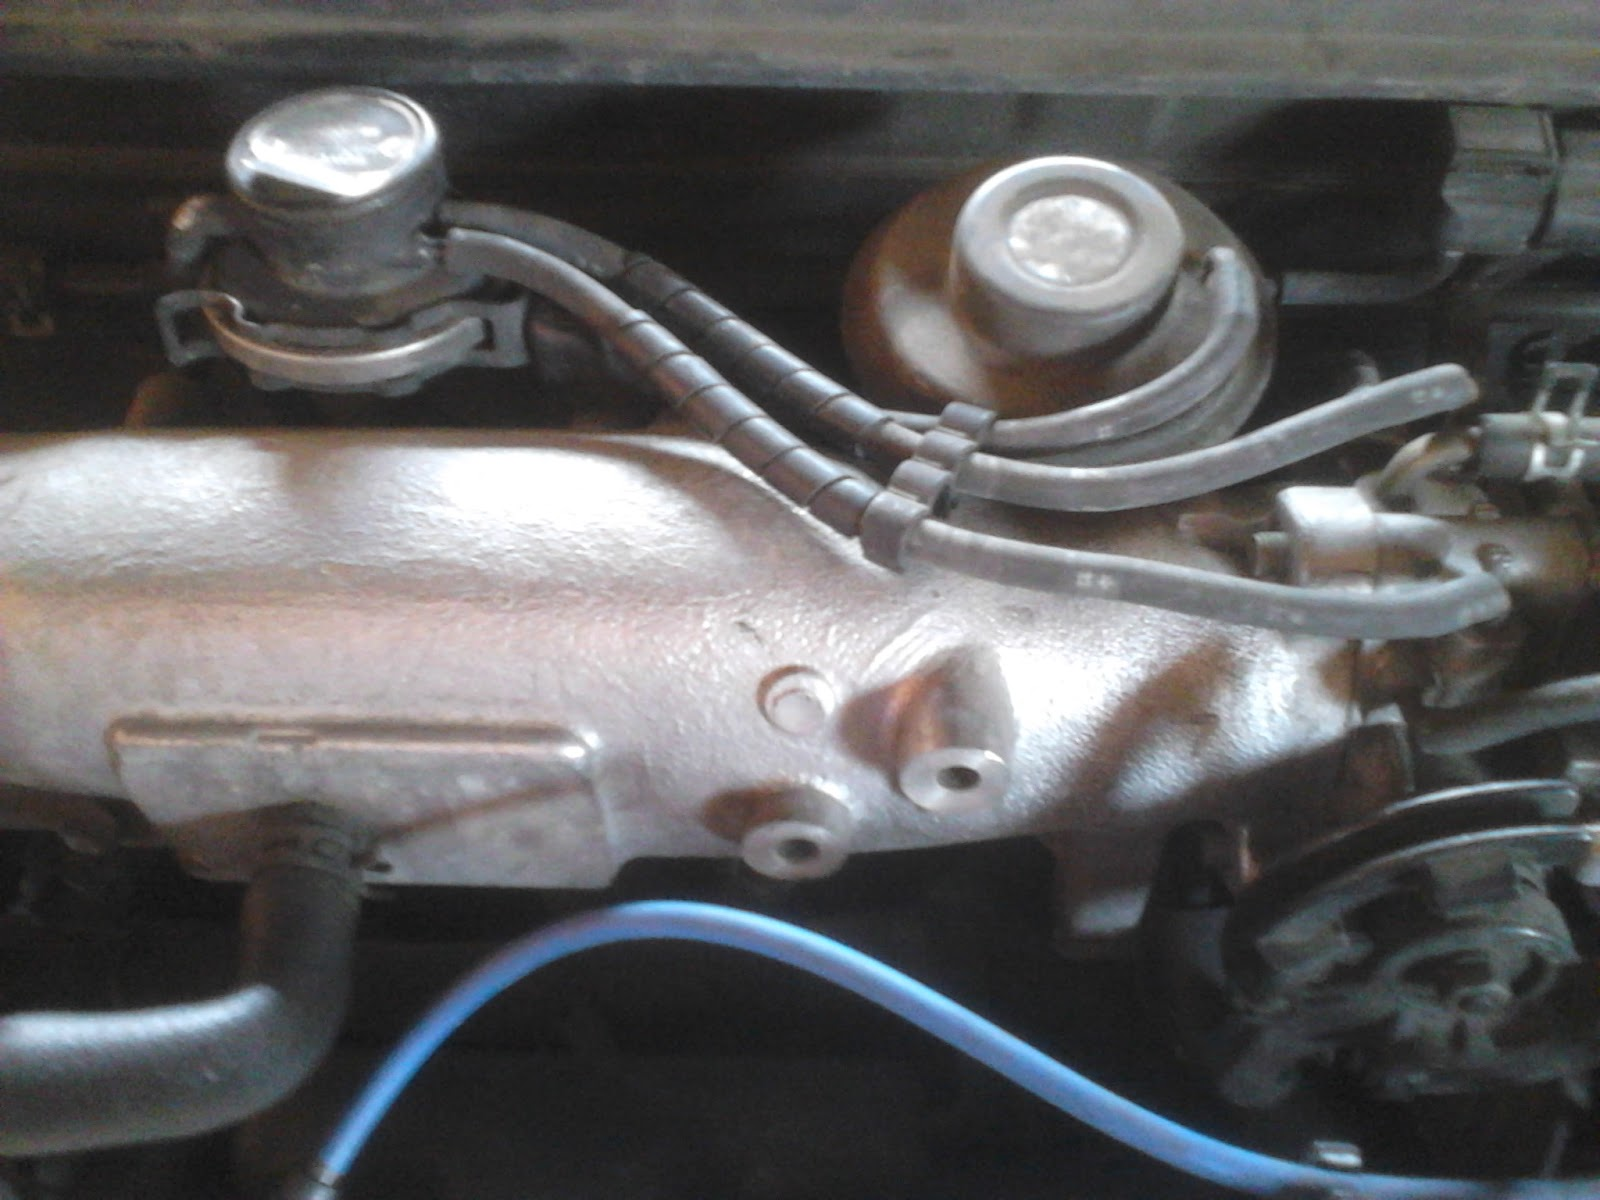 Watch likewise 2004 Rx330 Valve Cover Gaskets further Watch further Toyota Camry Code P0401 likewise Watch. on tacoma egr valve location